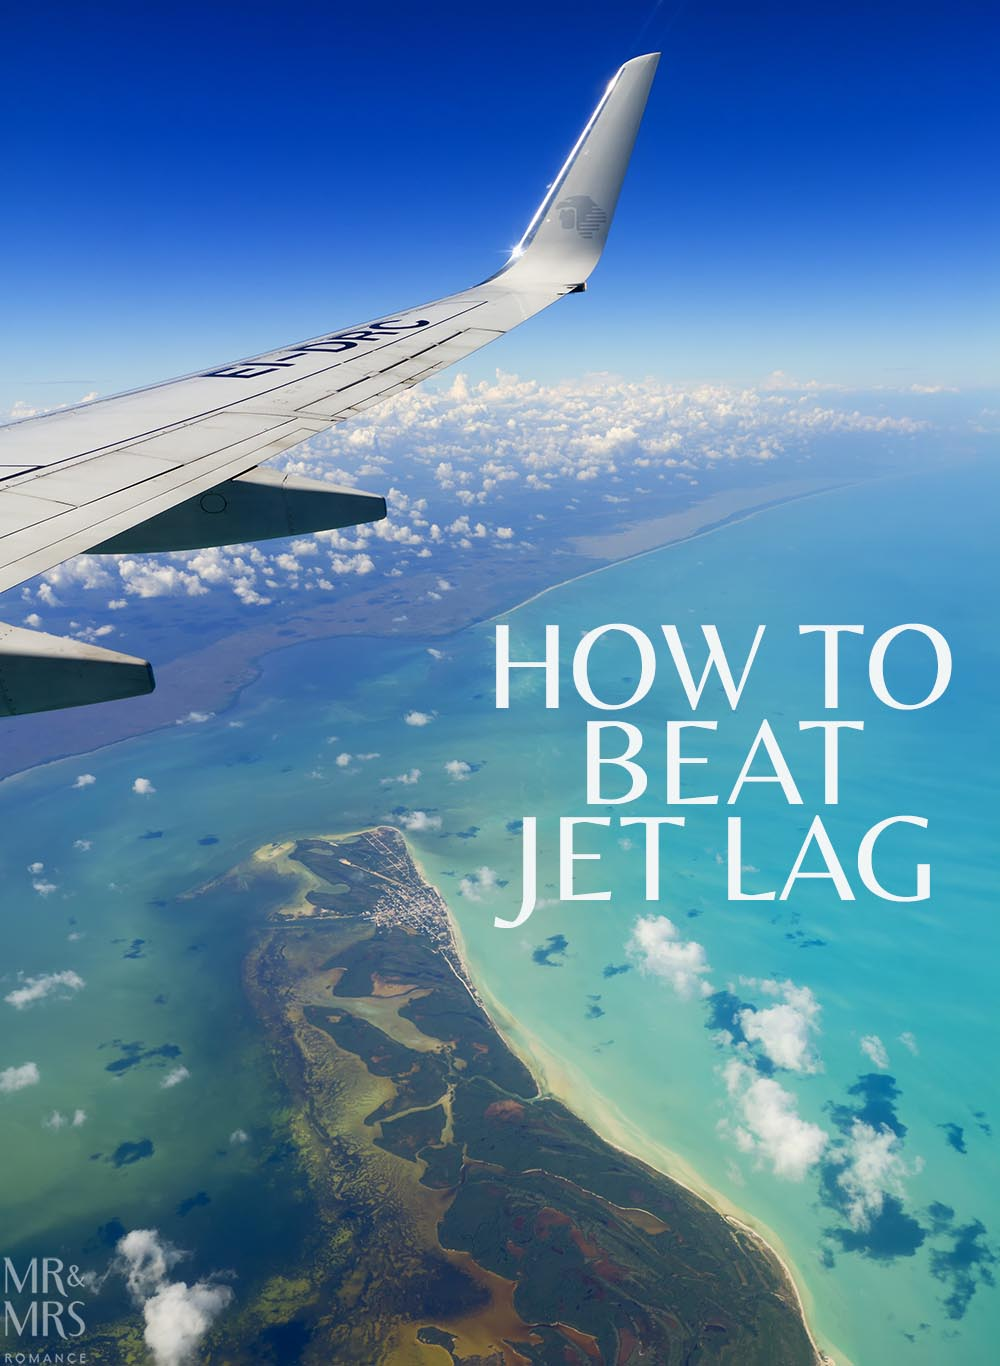 How to avoid jetlag - Mr & Mrs Romance